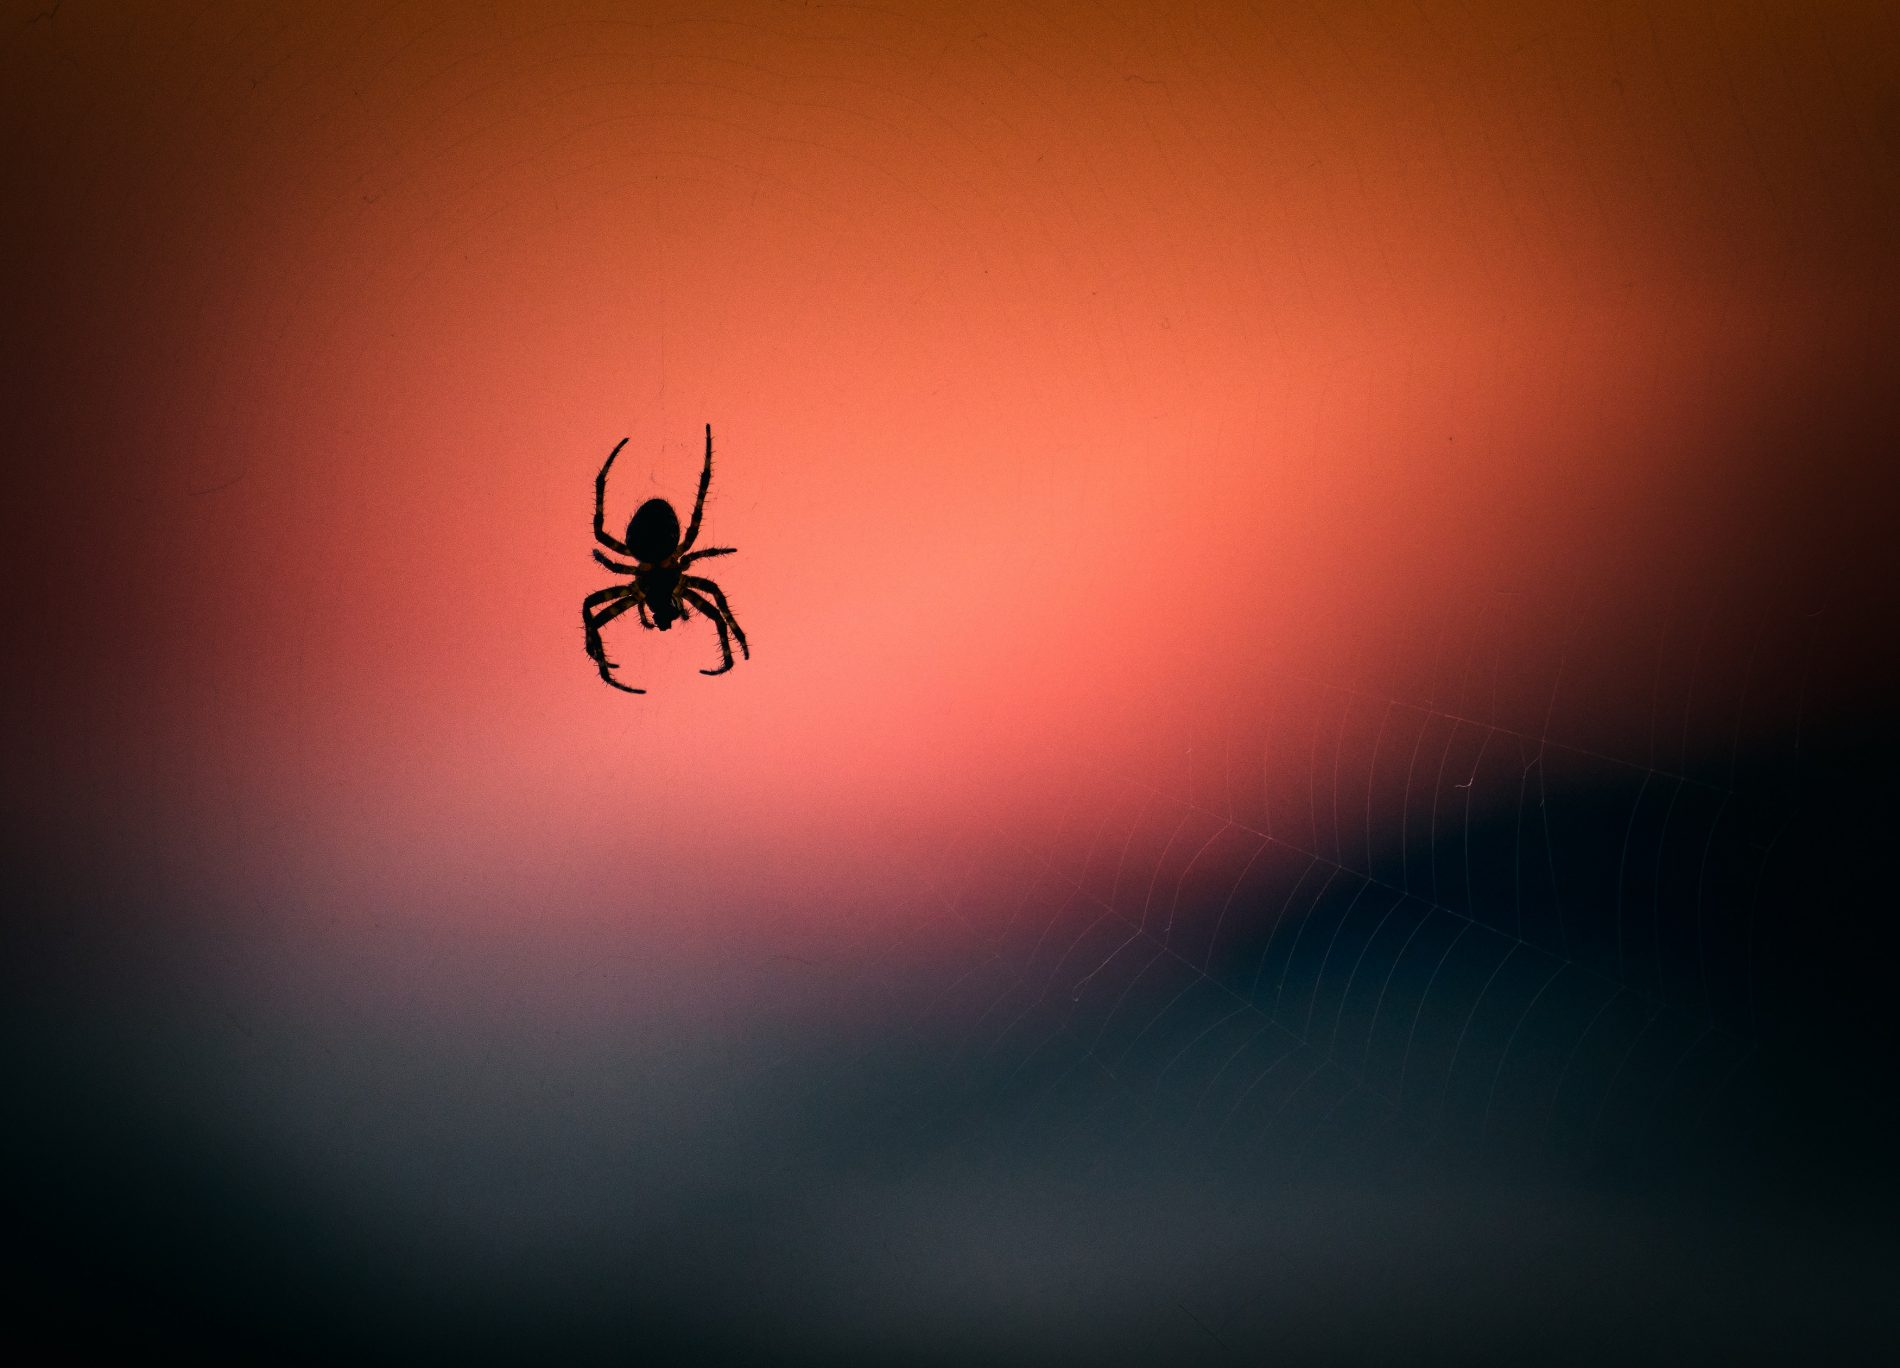 A Spider on LSD and a Journey to Build the Perfect Web